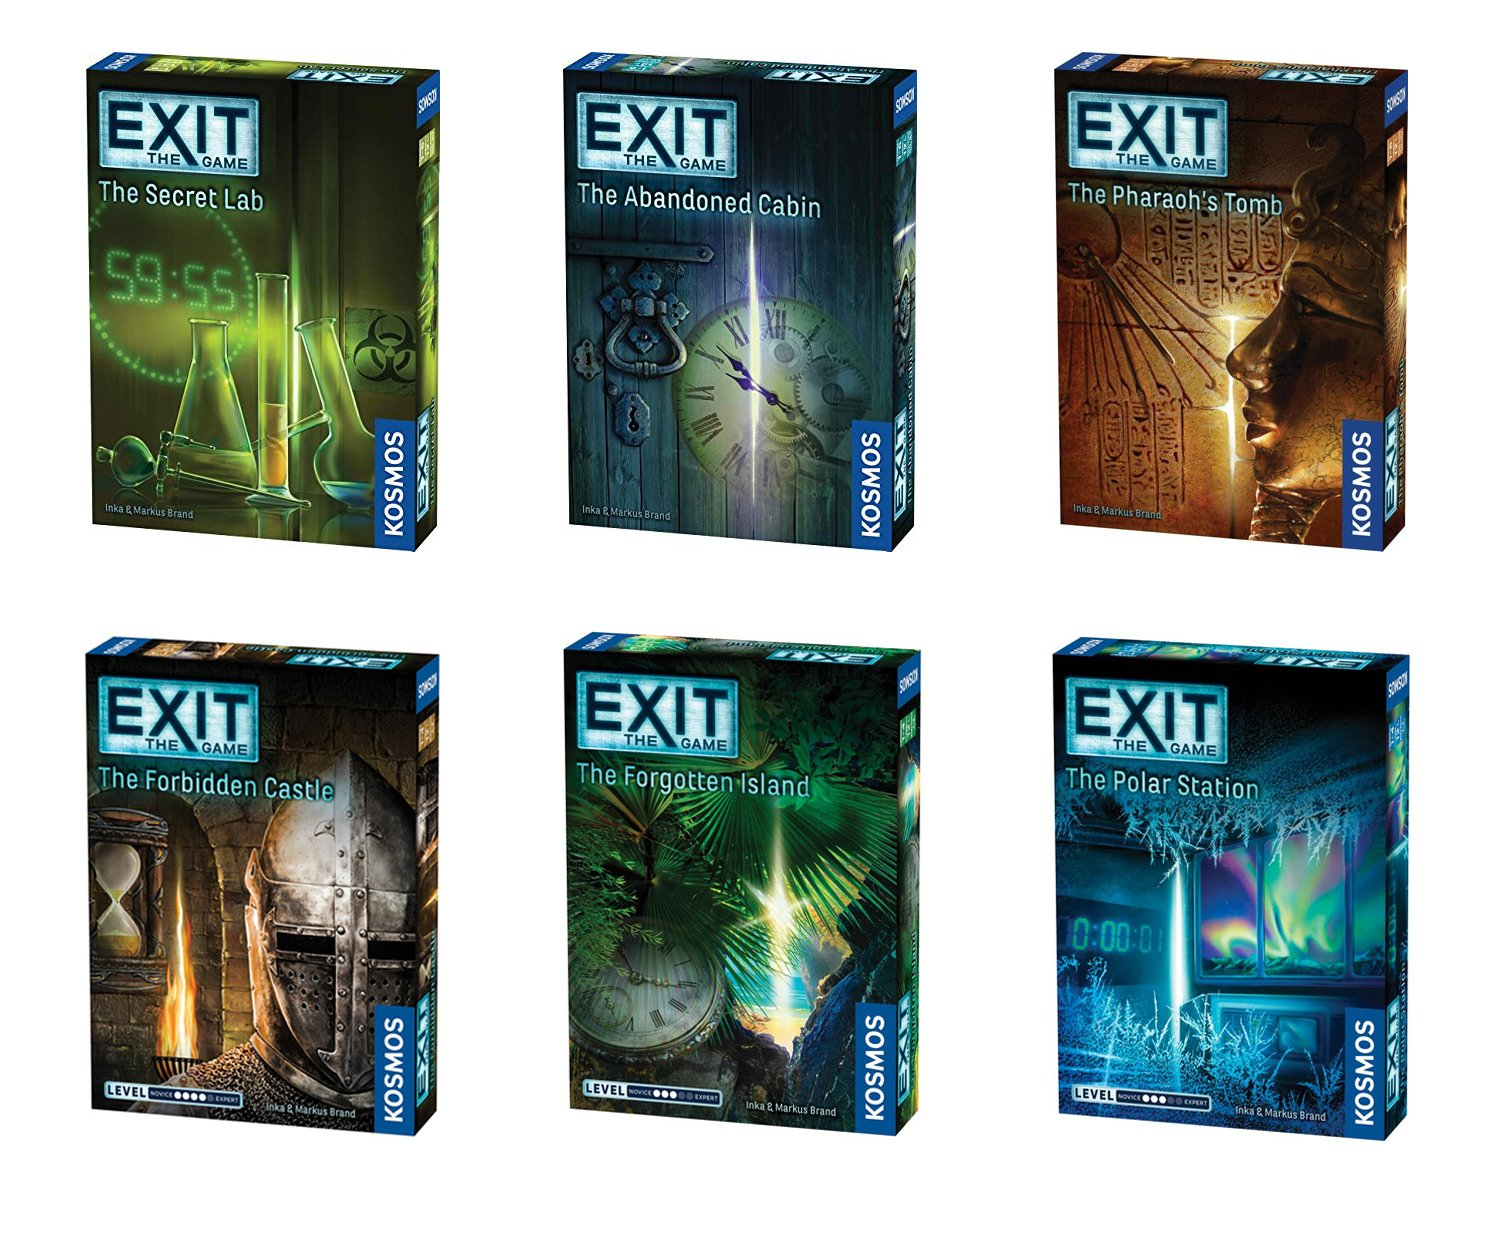 Thames & Kosmos Exit the Game Bundle of 6: The Secret Lab, The Abandoned Cabin, The Pharaoh's Tomb, The Forbidden Castle, The Polar Station, and The Forgotten Island